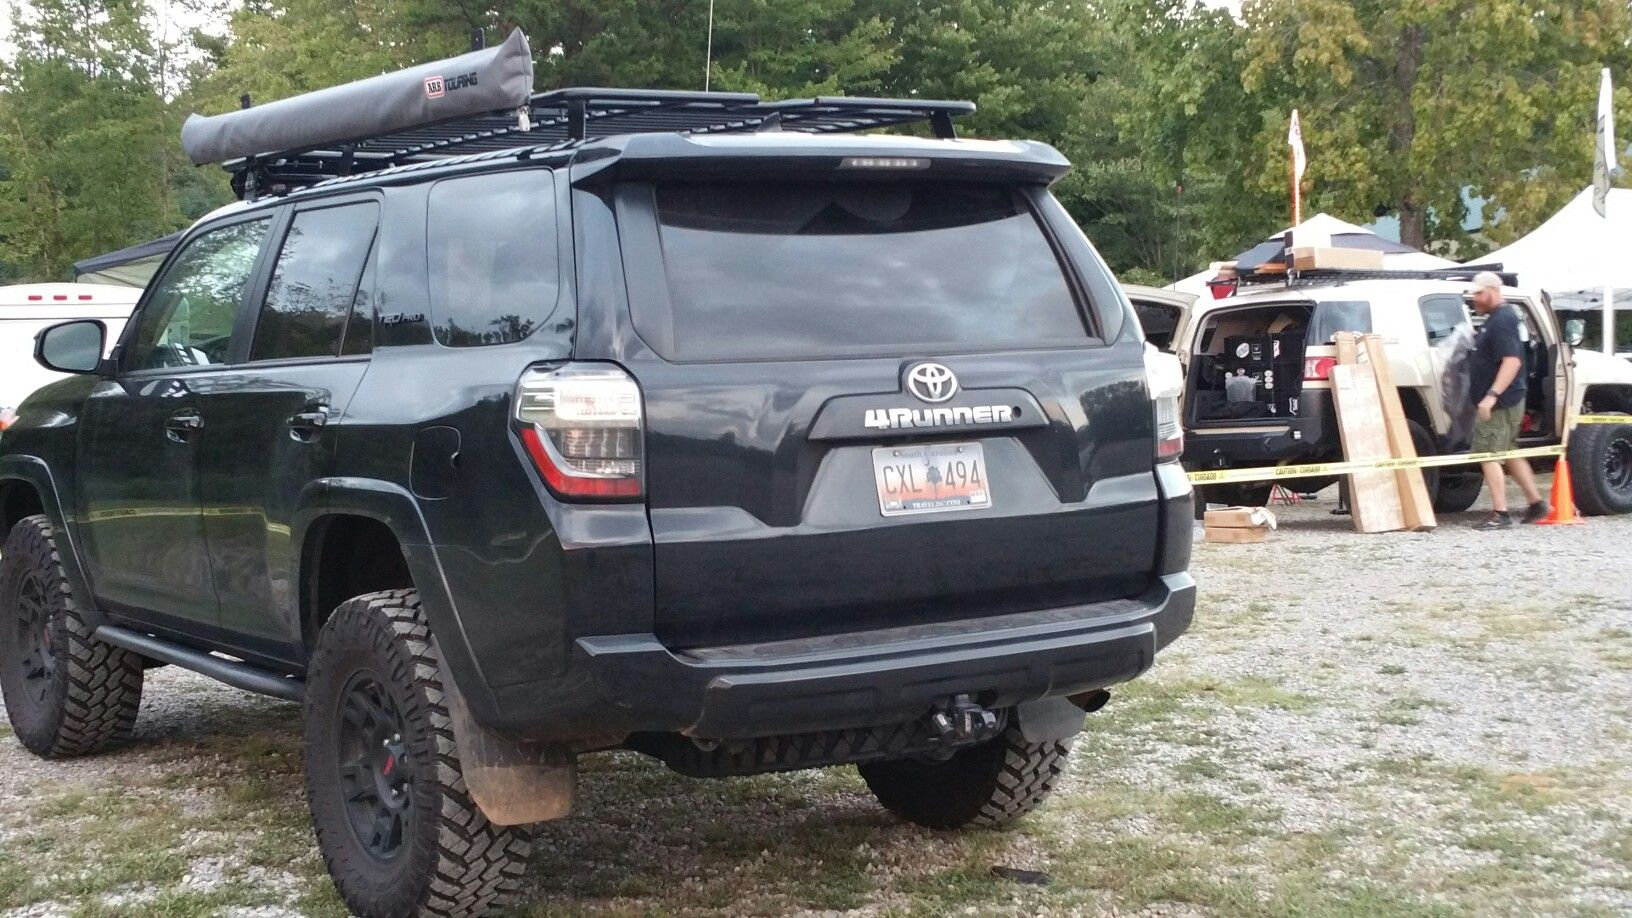 Arb Awnings And Roof Racks For 4runner Camping And Adventure From Pure4runner Com 4runner Toyota 4runner Ford Expedition